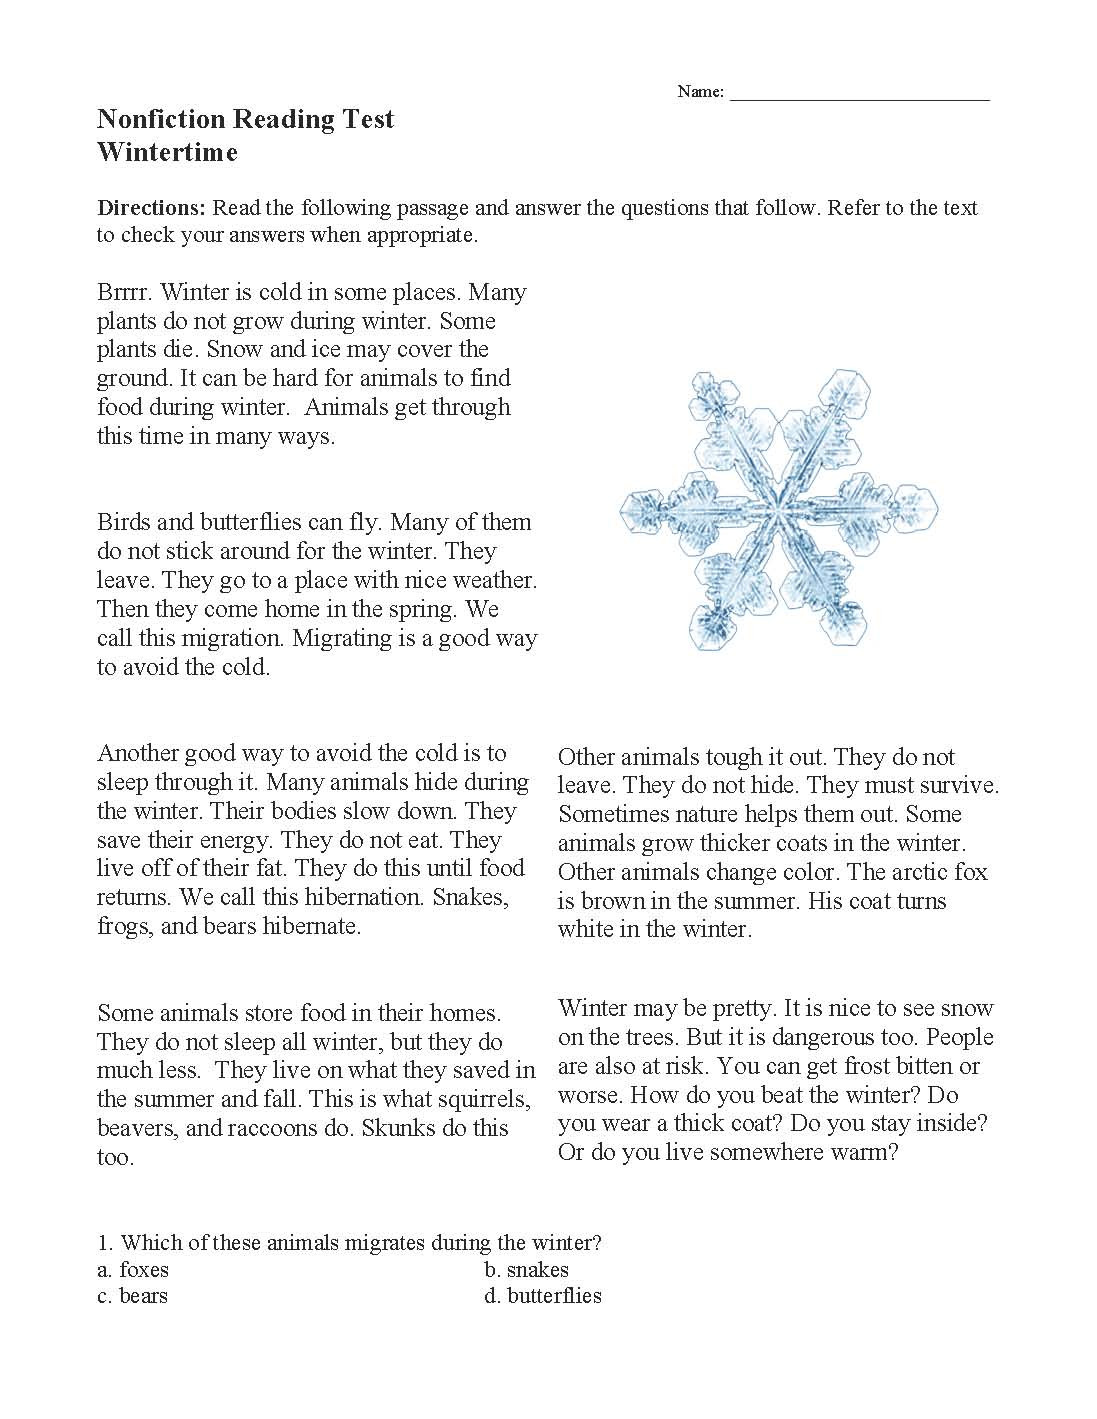 Winter Reading Comprehension Worksheets Wintertime